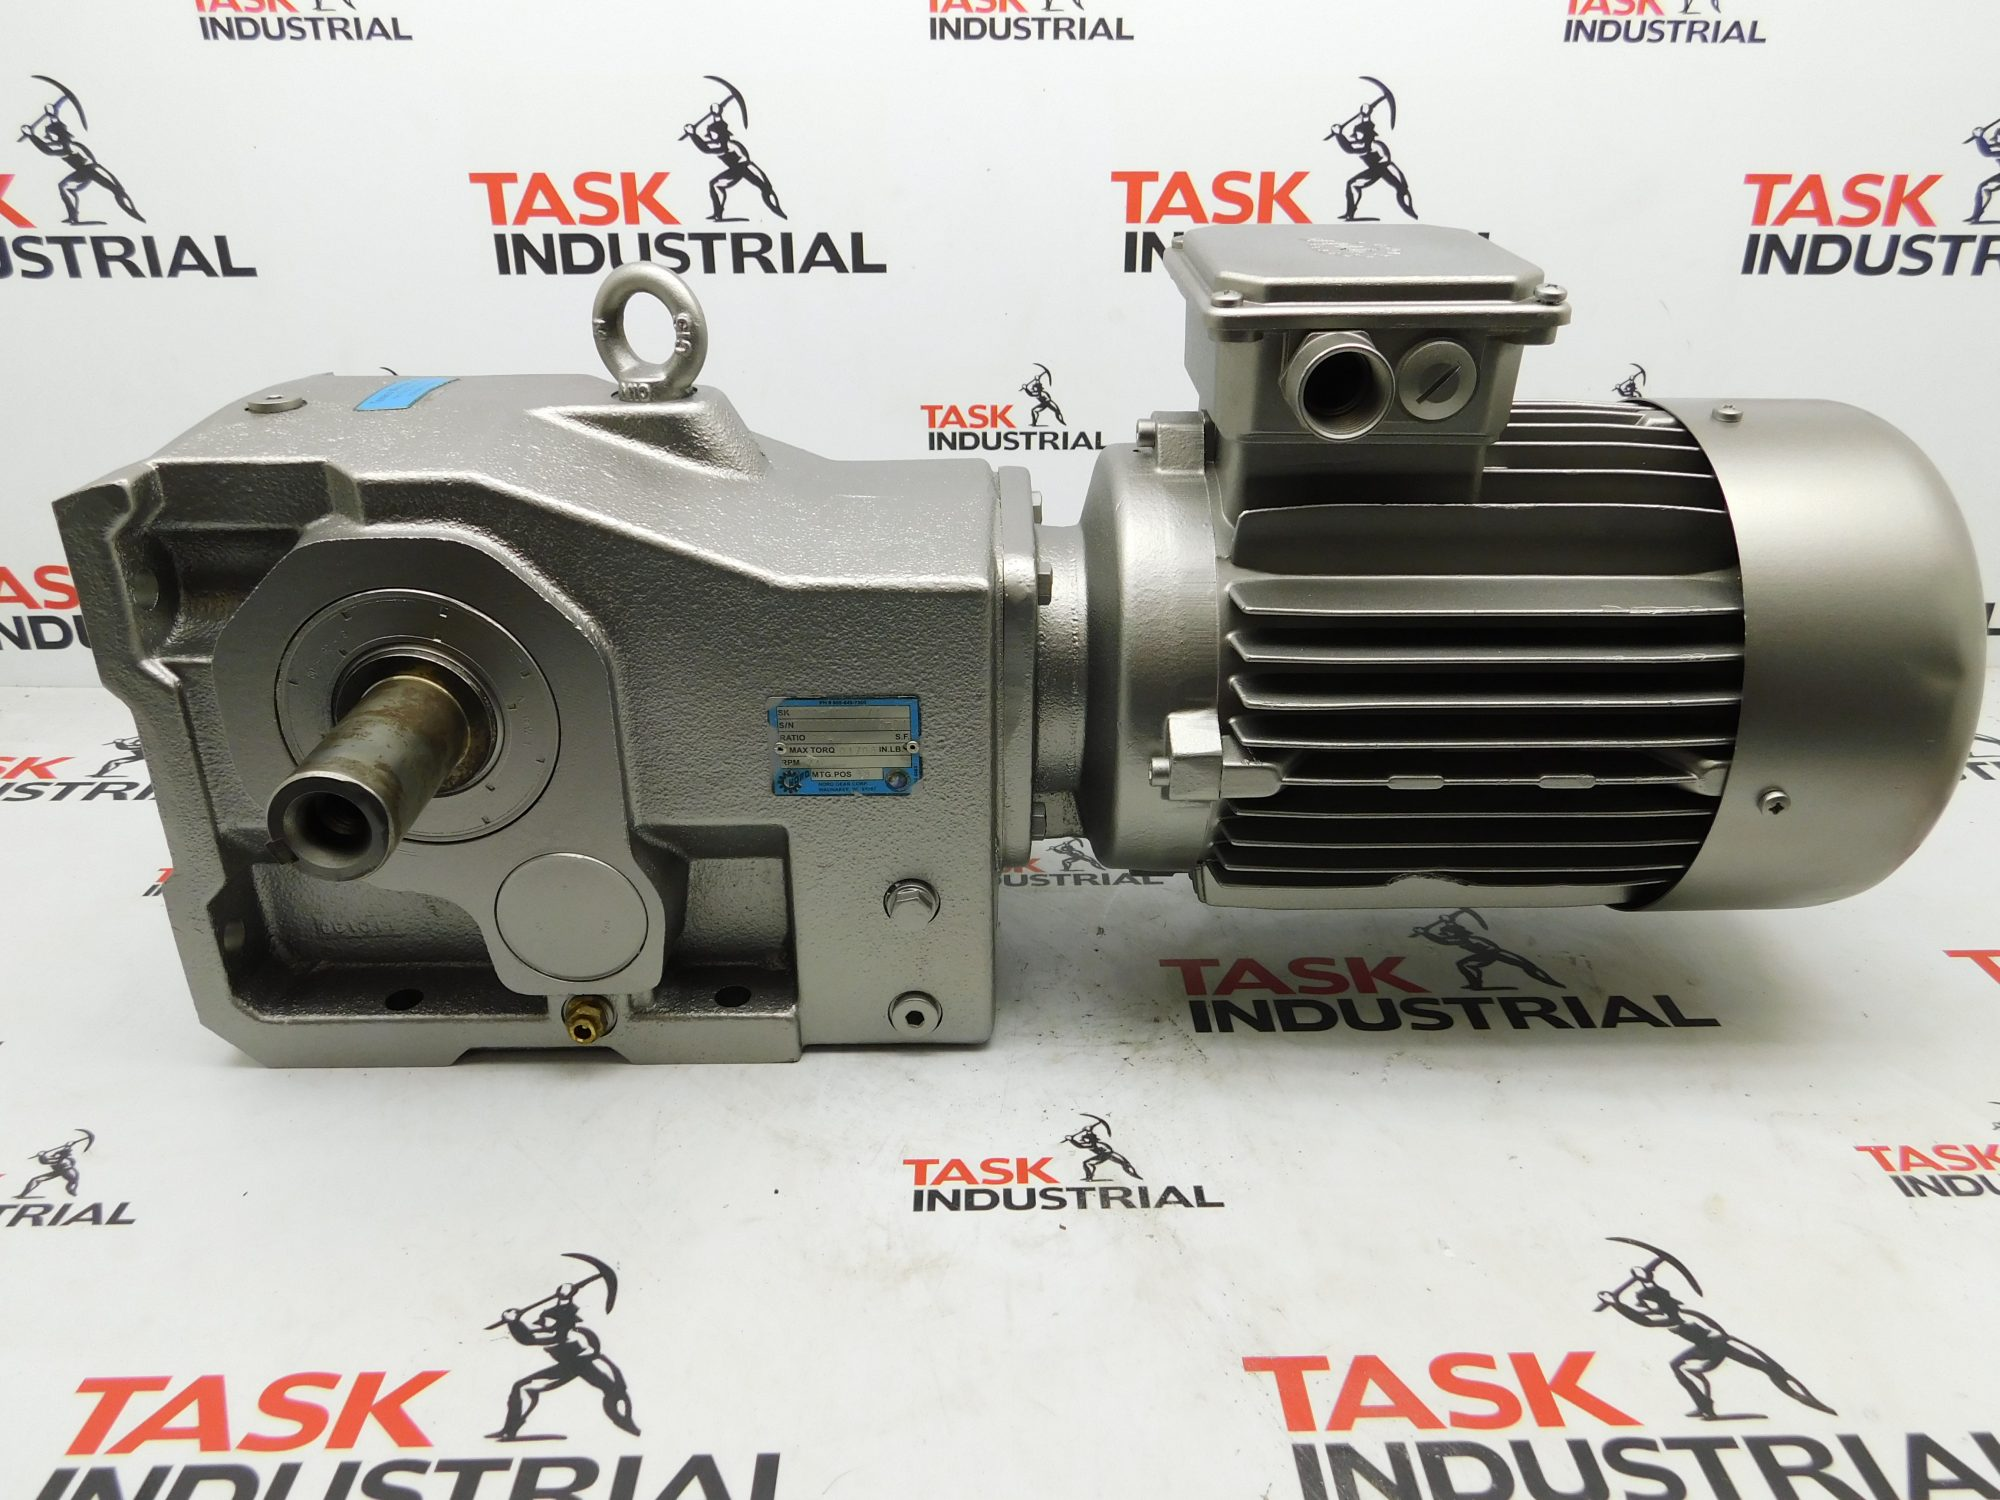 Nord SK9022-100 C/4 Gear Box 3HP, Max Torq 01708 Ratio 22.58